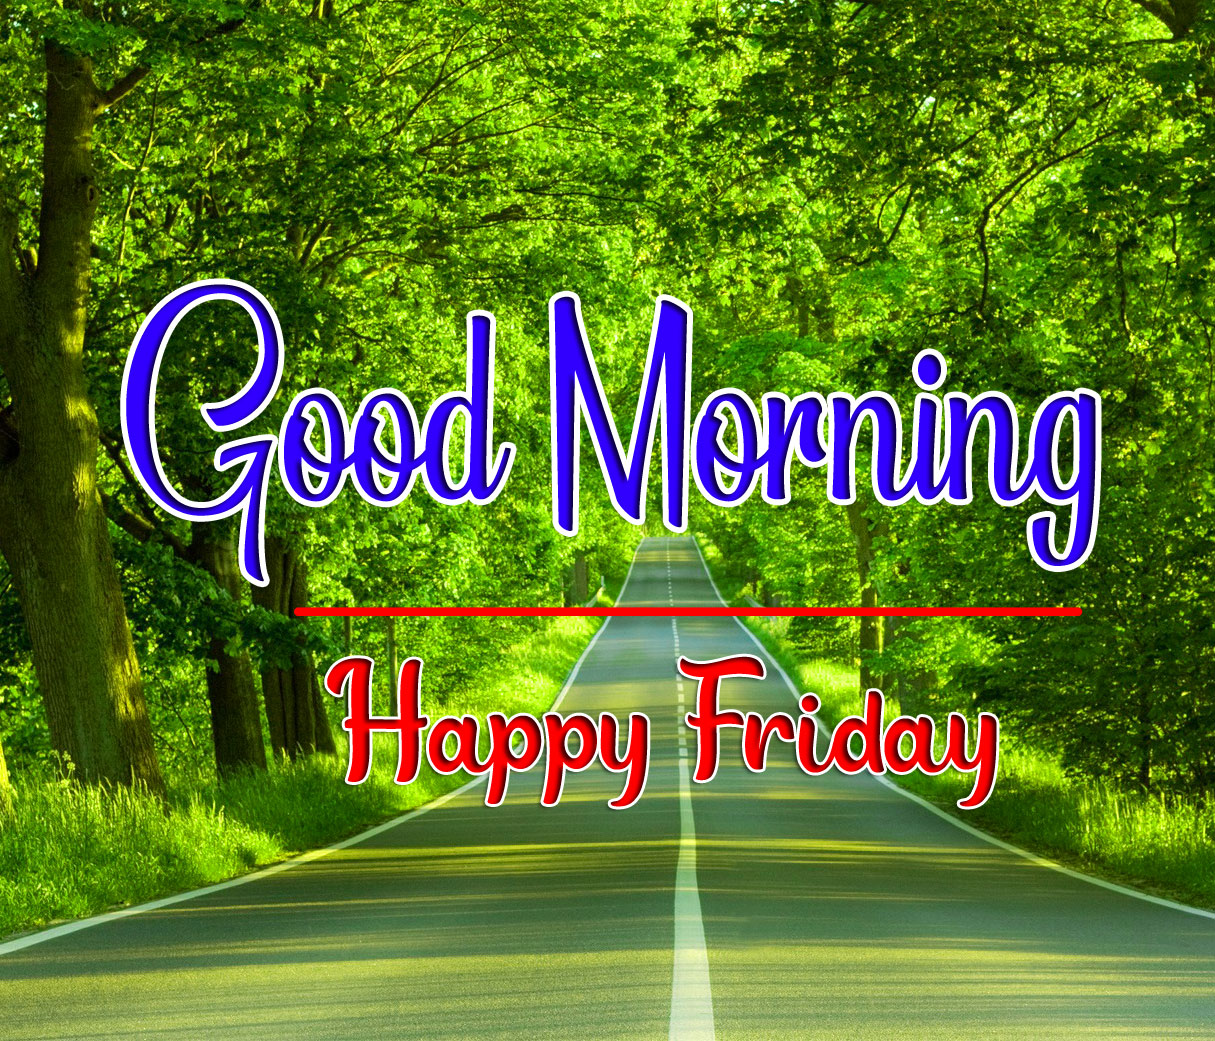 Free HD friday Good morning Wishes Images Fresh